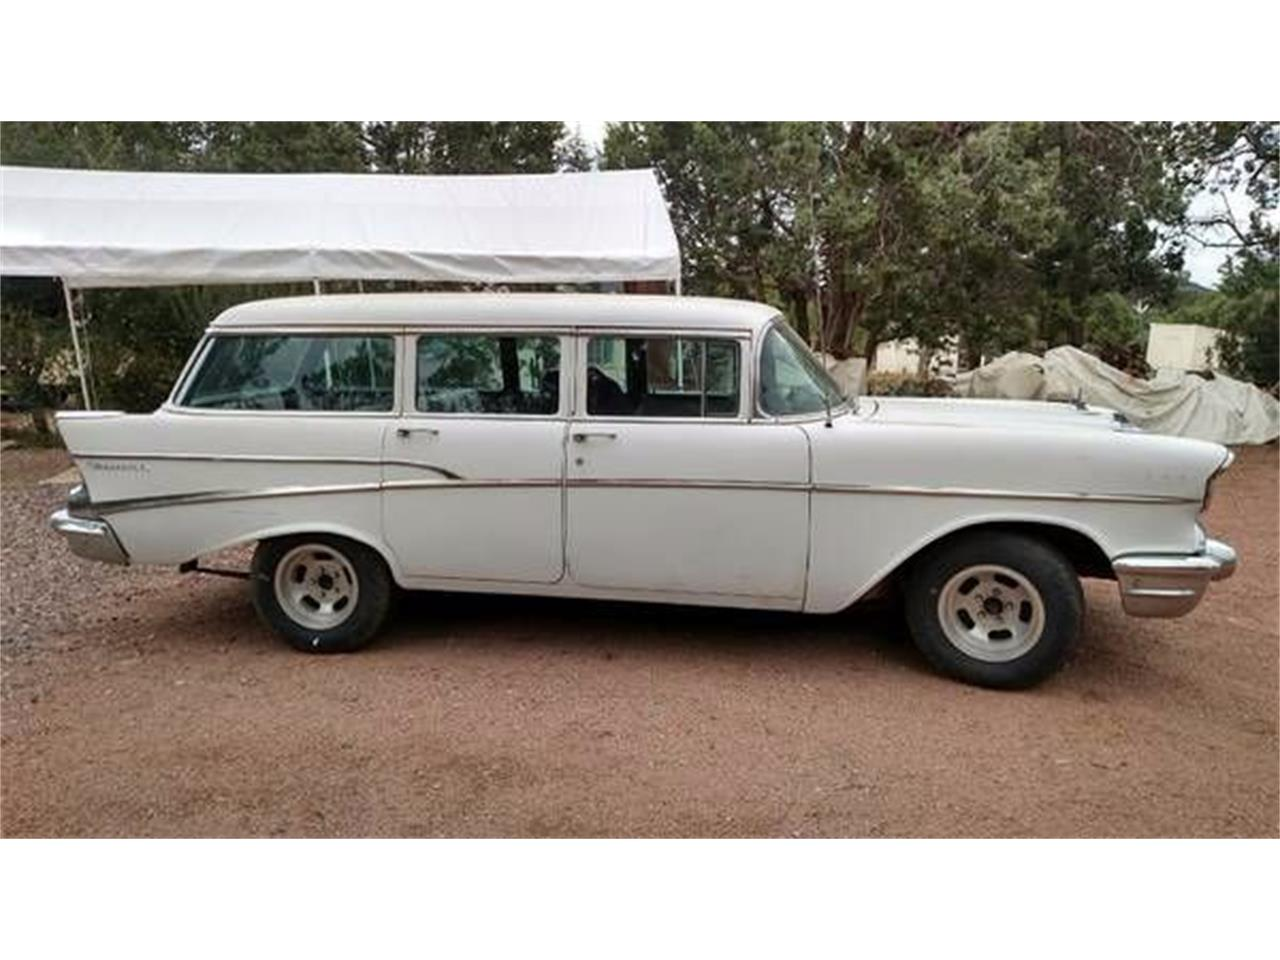 For Sale 1957 Chevrolet Station Wagon In Cadillac Michigan